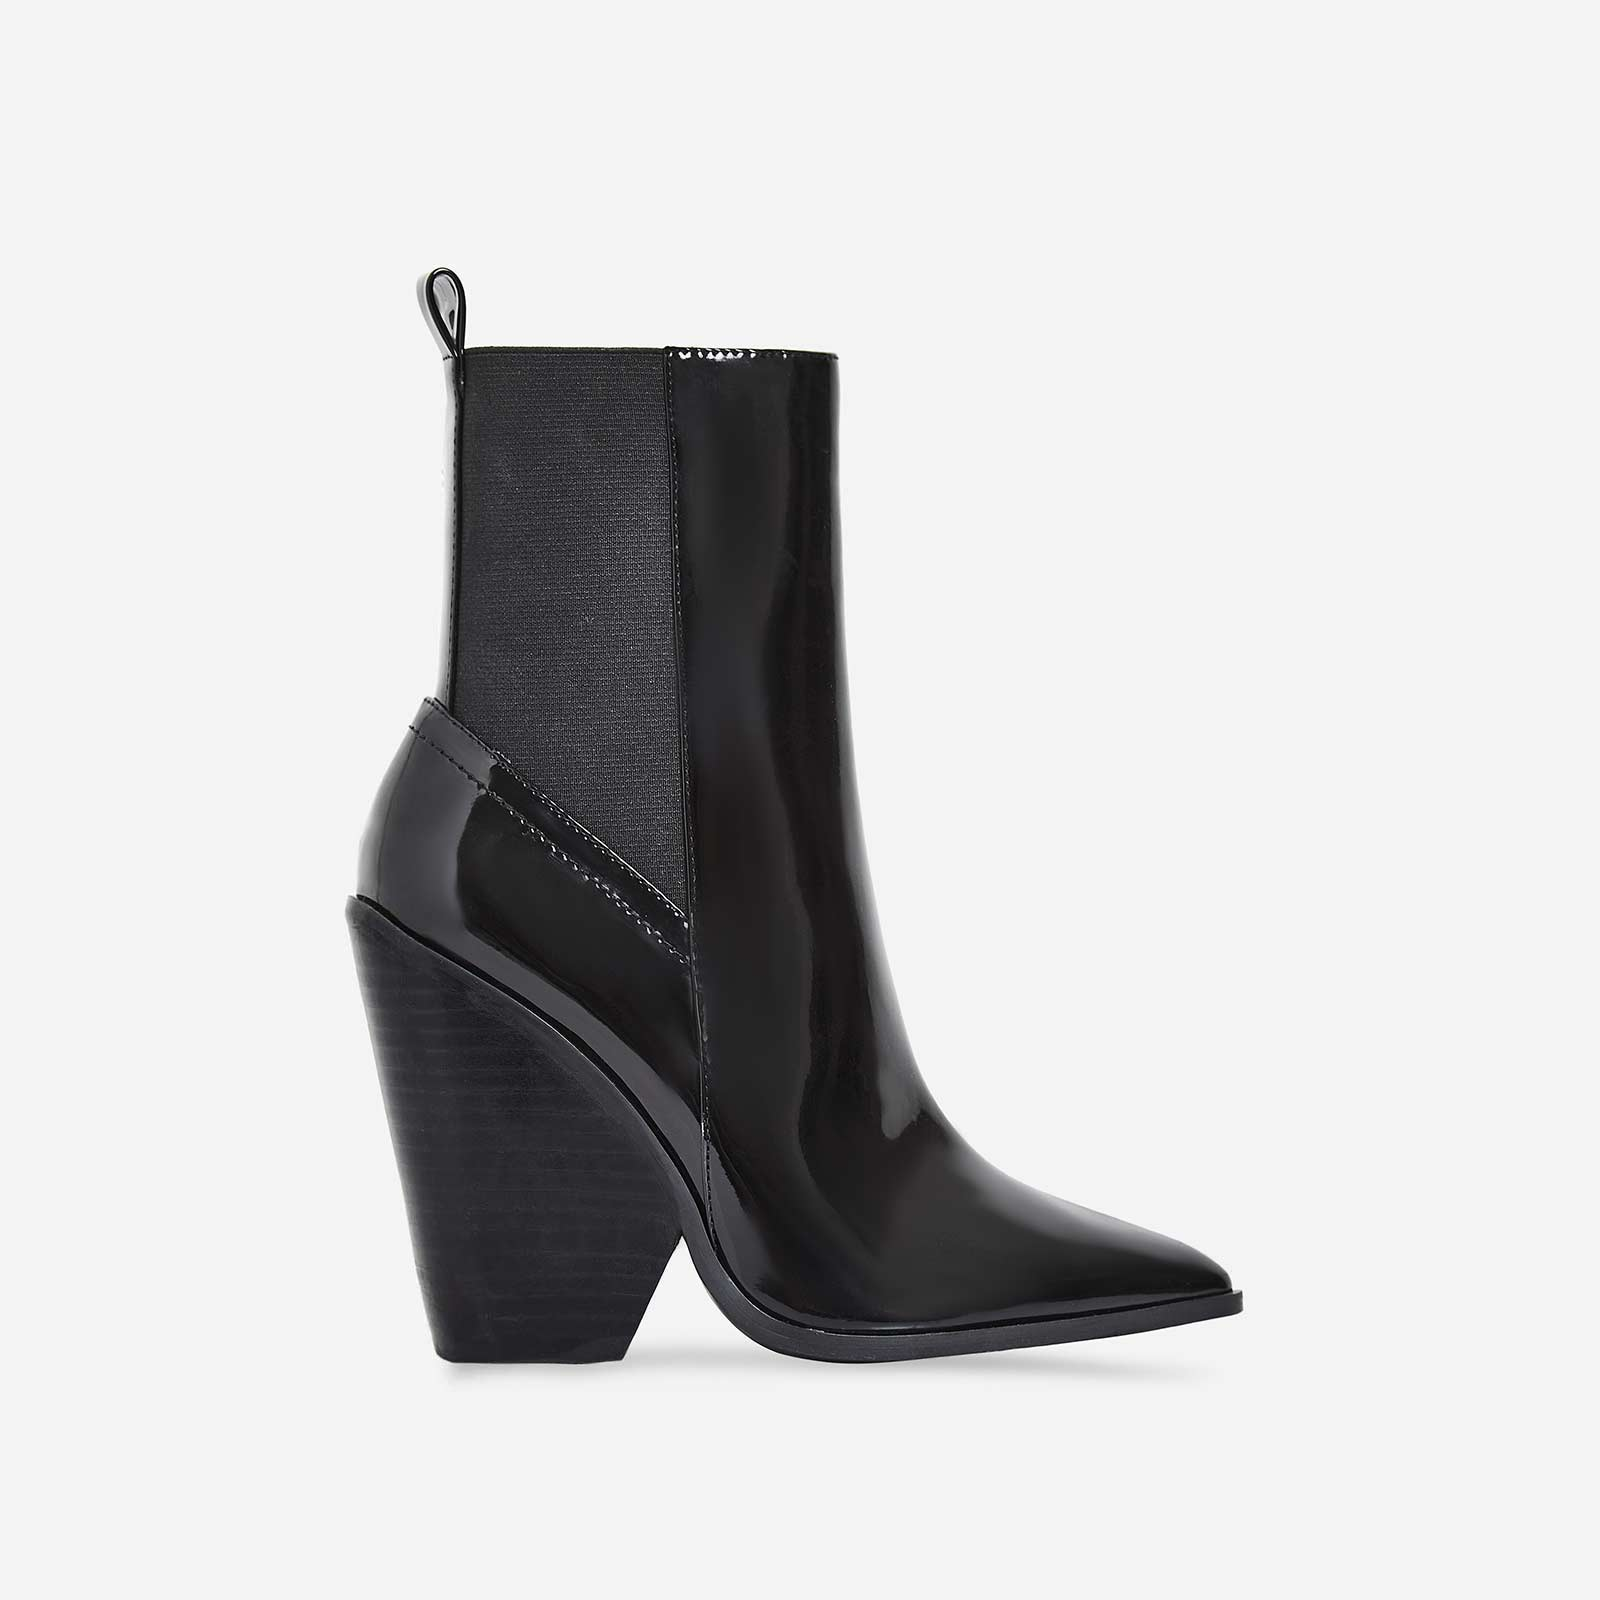 Bella Black Heel Ankle Boot In Black Patent